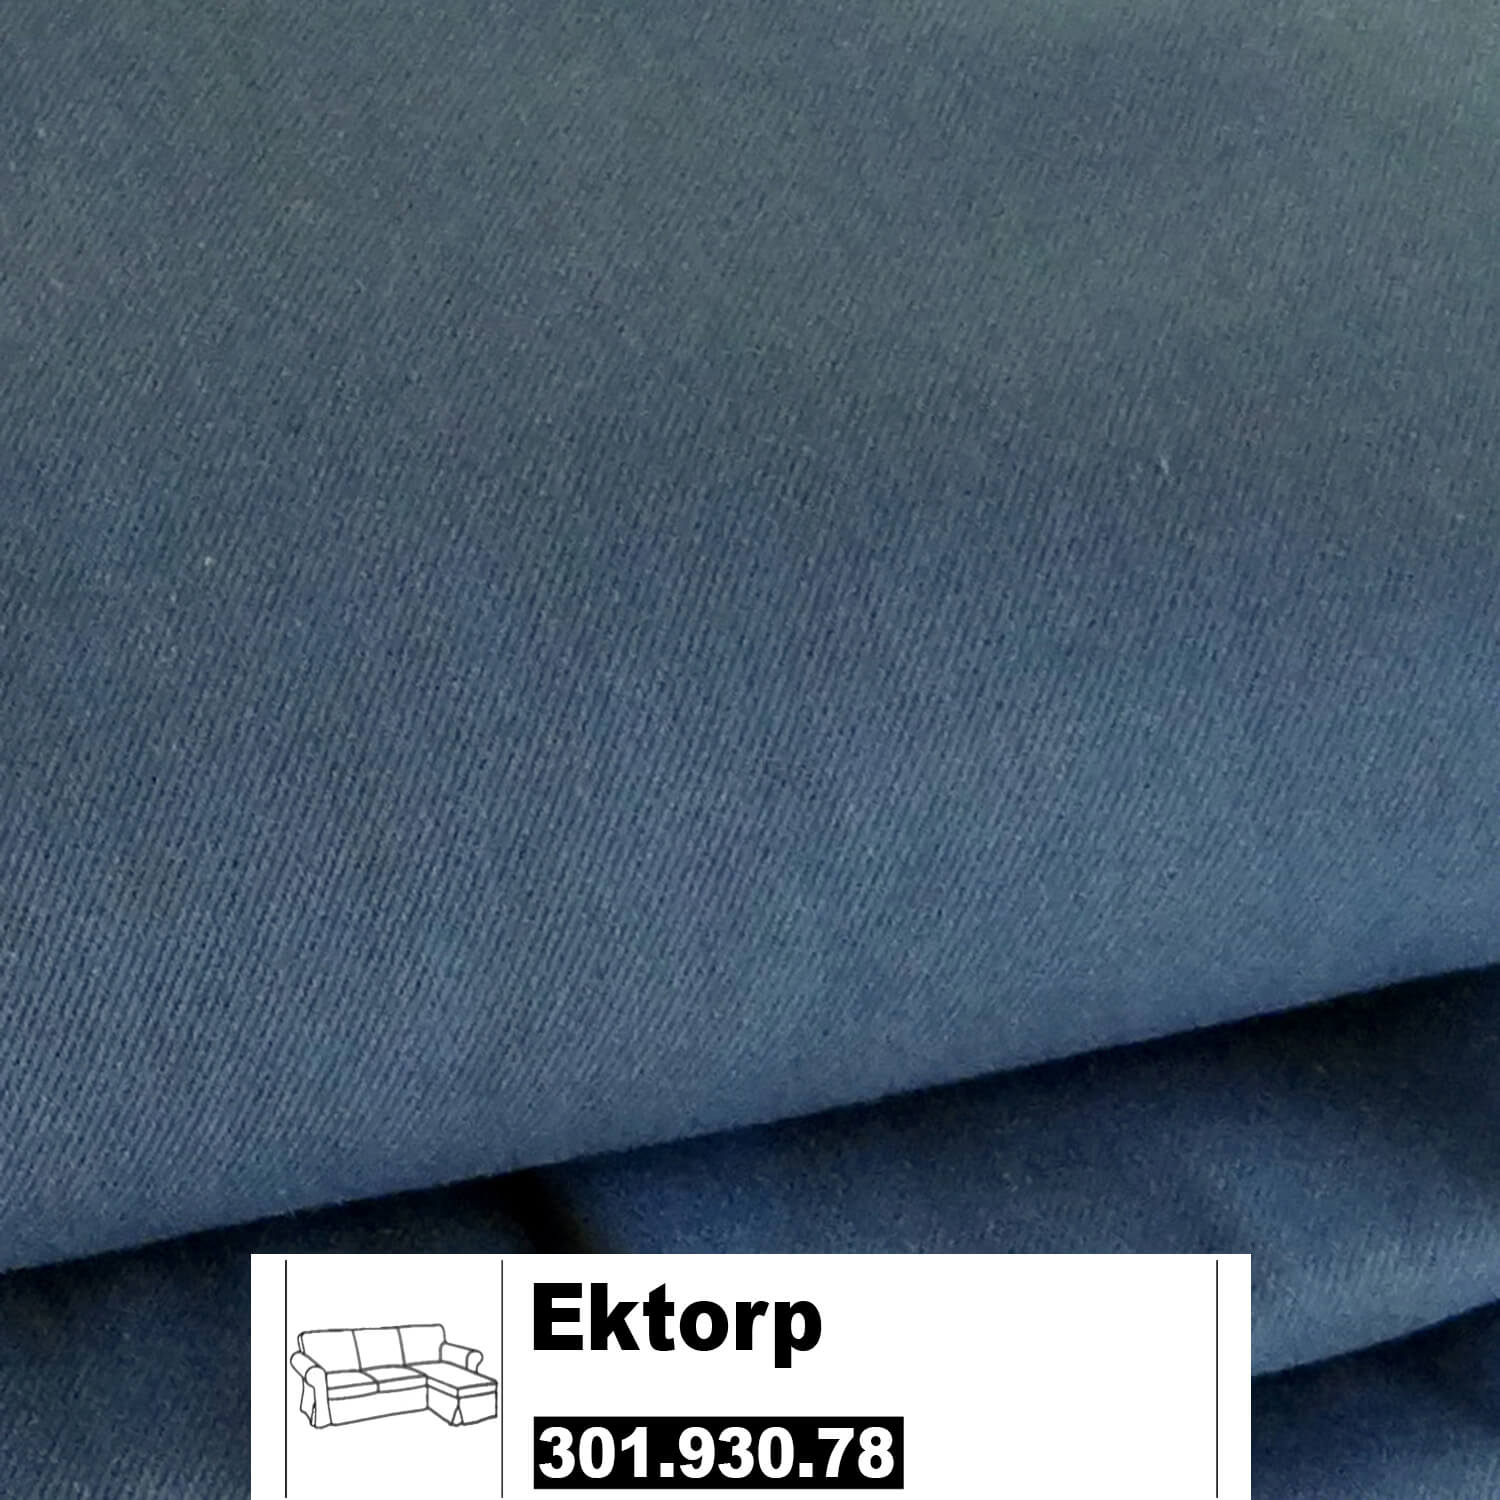 ikea ektorp bezug f 2er sofa mit recamiere in idemo blau 30193078 30193078. Black Bedroom Furniture Sets. Home Design Ideas